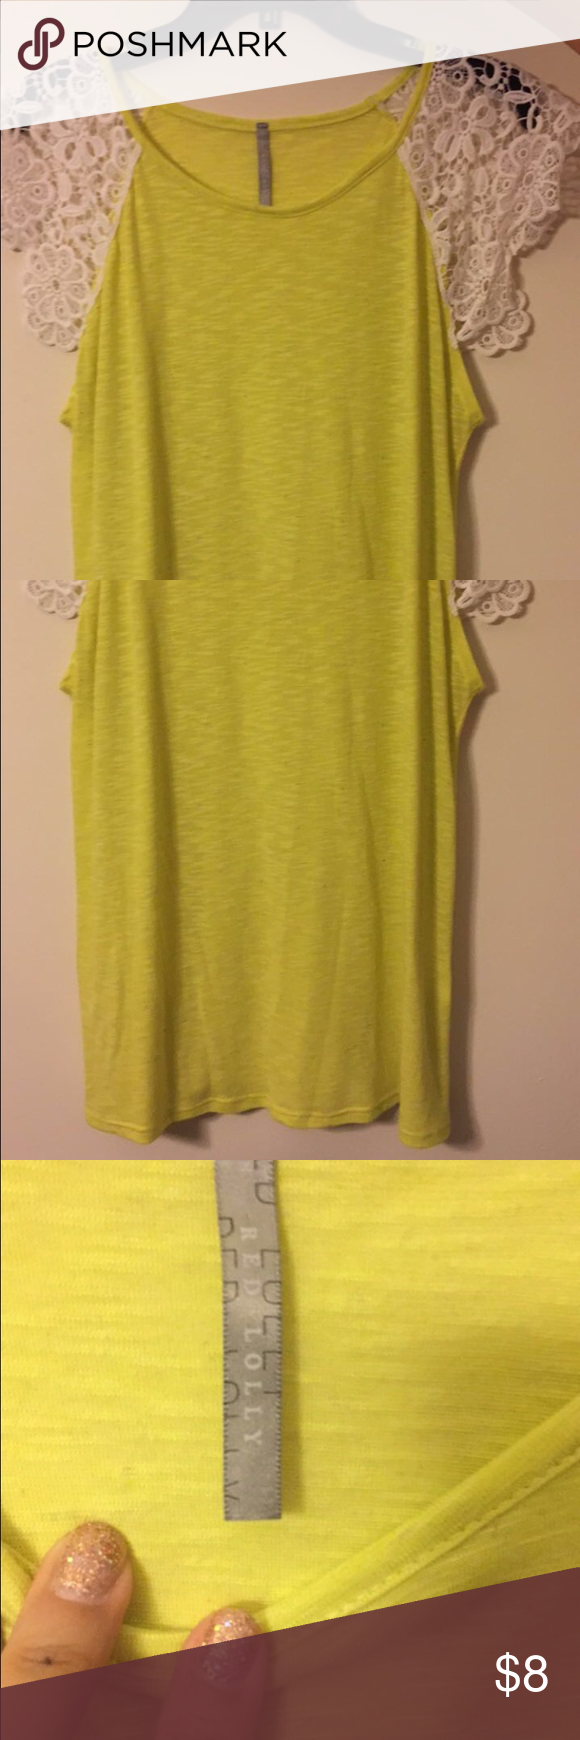 Yellow white laced shoulder top Yellow white laced shoulder top in good condition. This is a flowy top sort of stretchy too. Size: L. Store: Online Boutique - Dottie Couture. No trade, cash only! Negotiable! dottie couture Tops